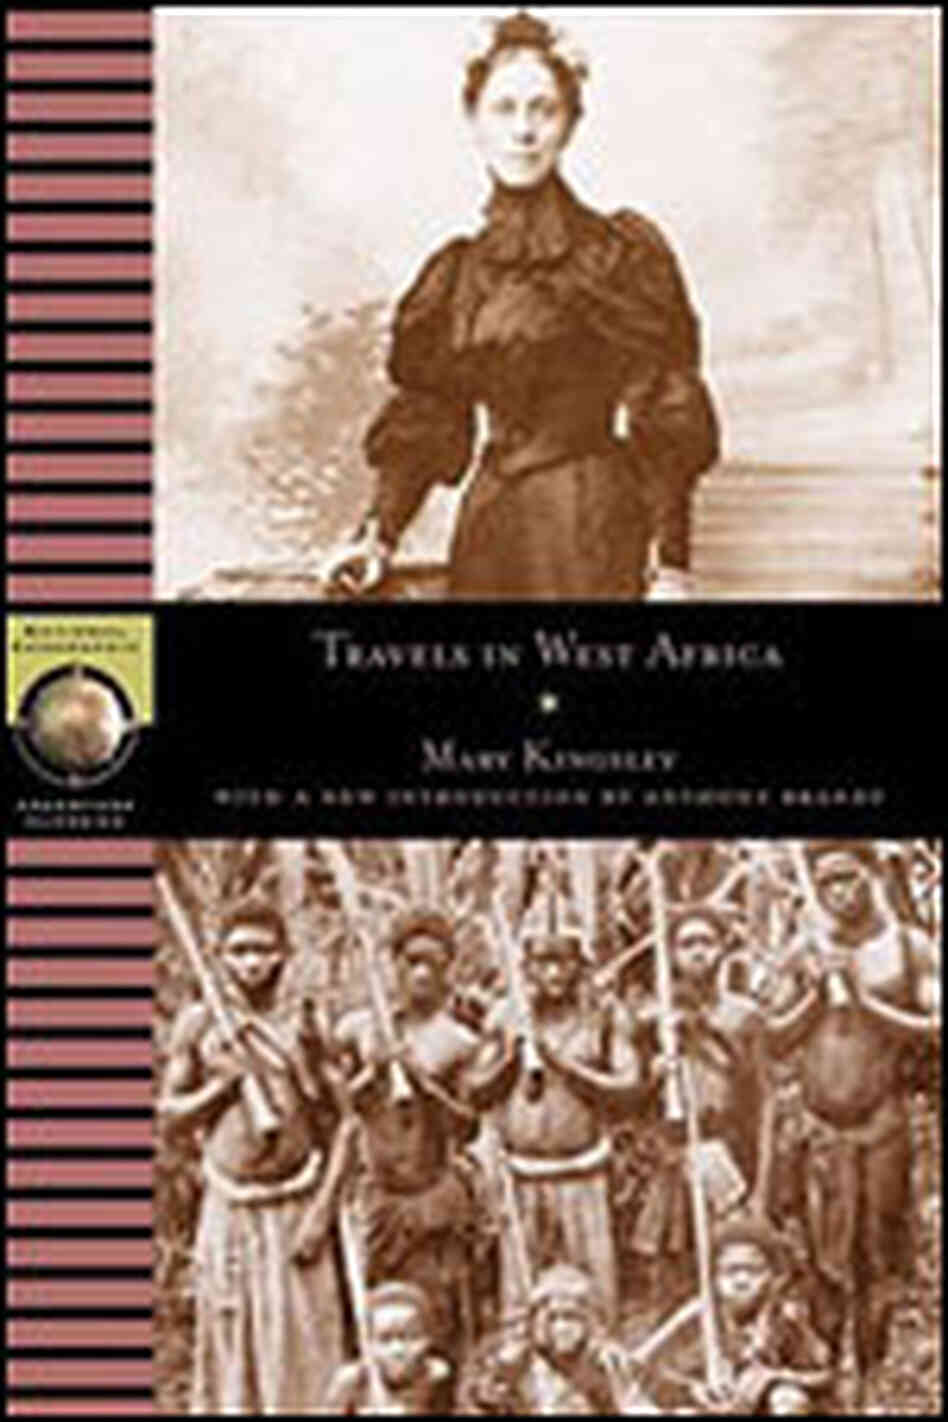 'Travels in West Africa'